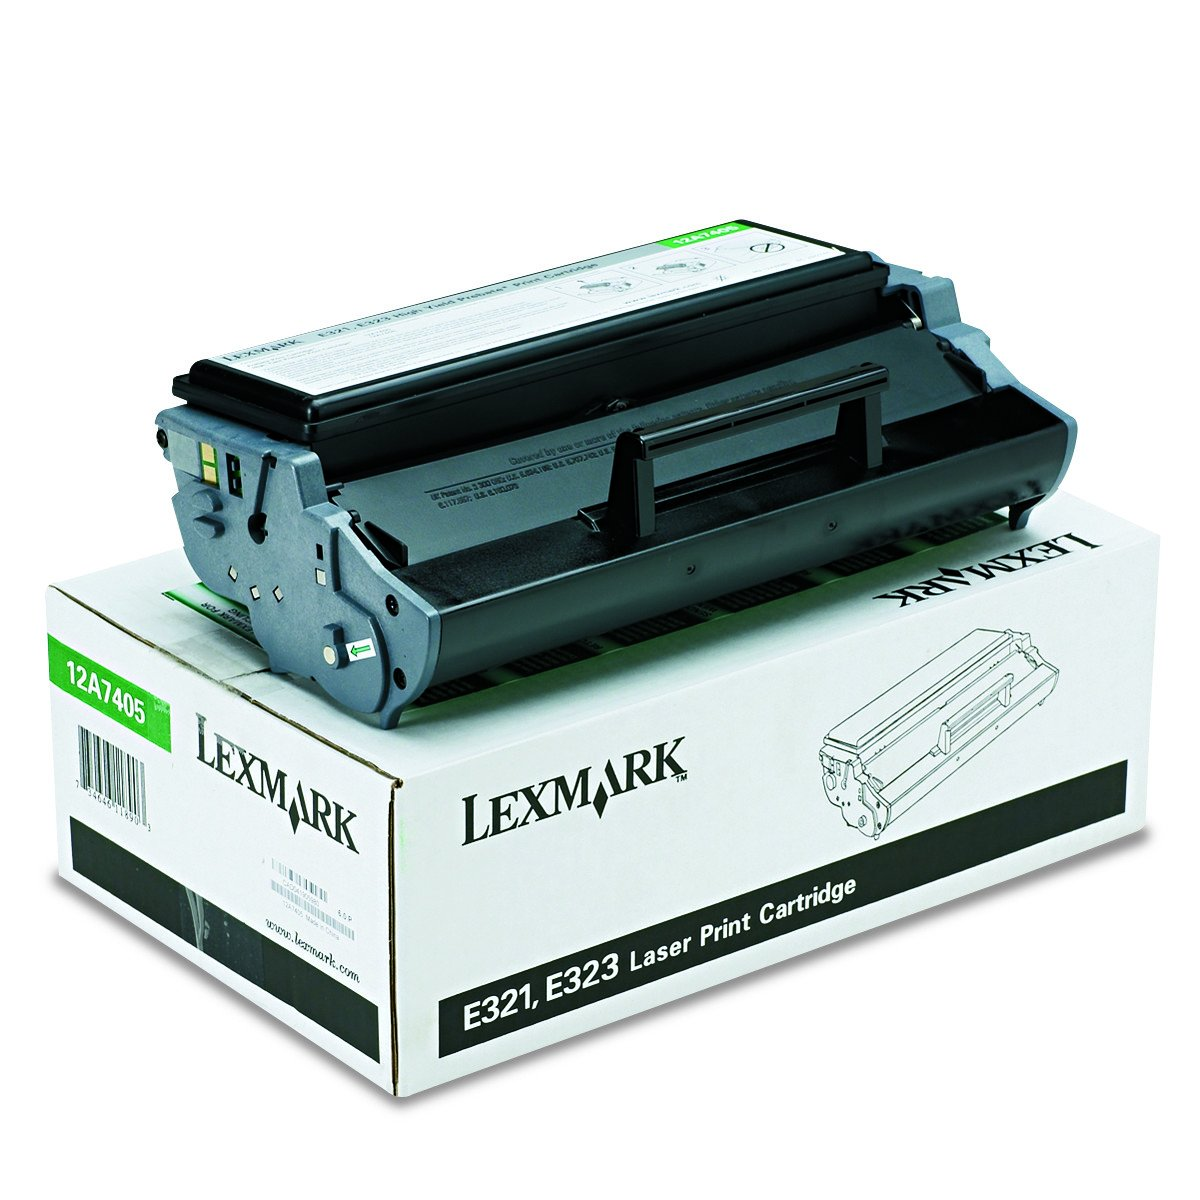 Lexmark 12A7405 High-Yield Toner, 6000 Page-Yield, Black by Lexmark (Image #1)